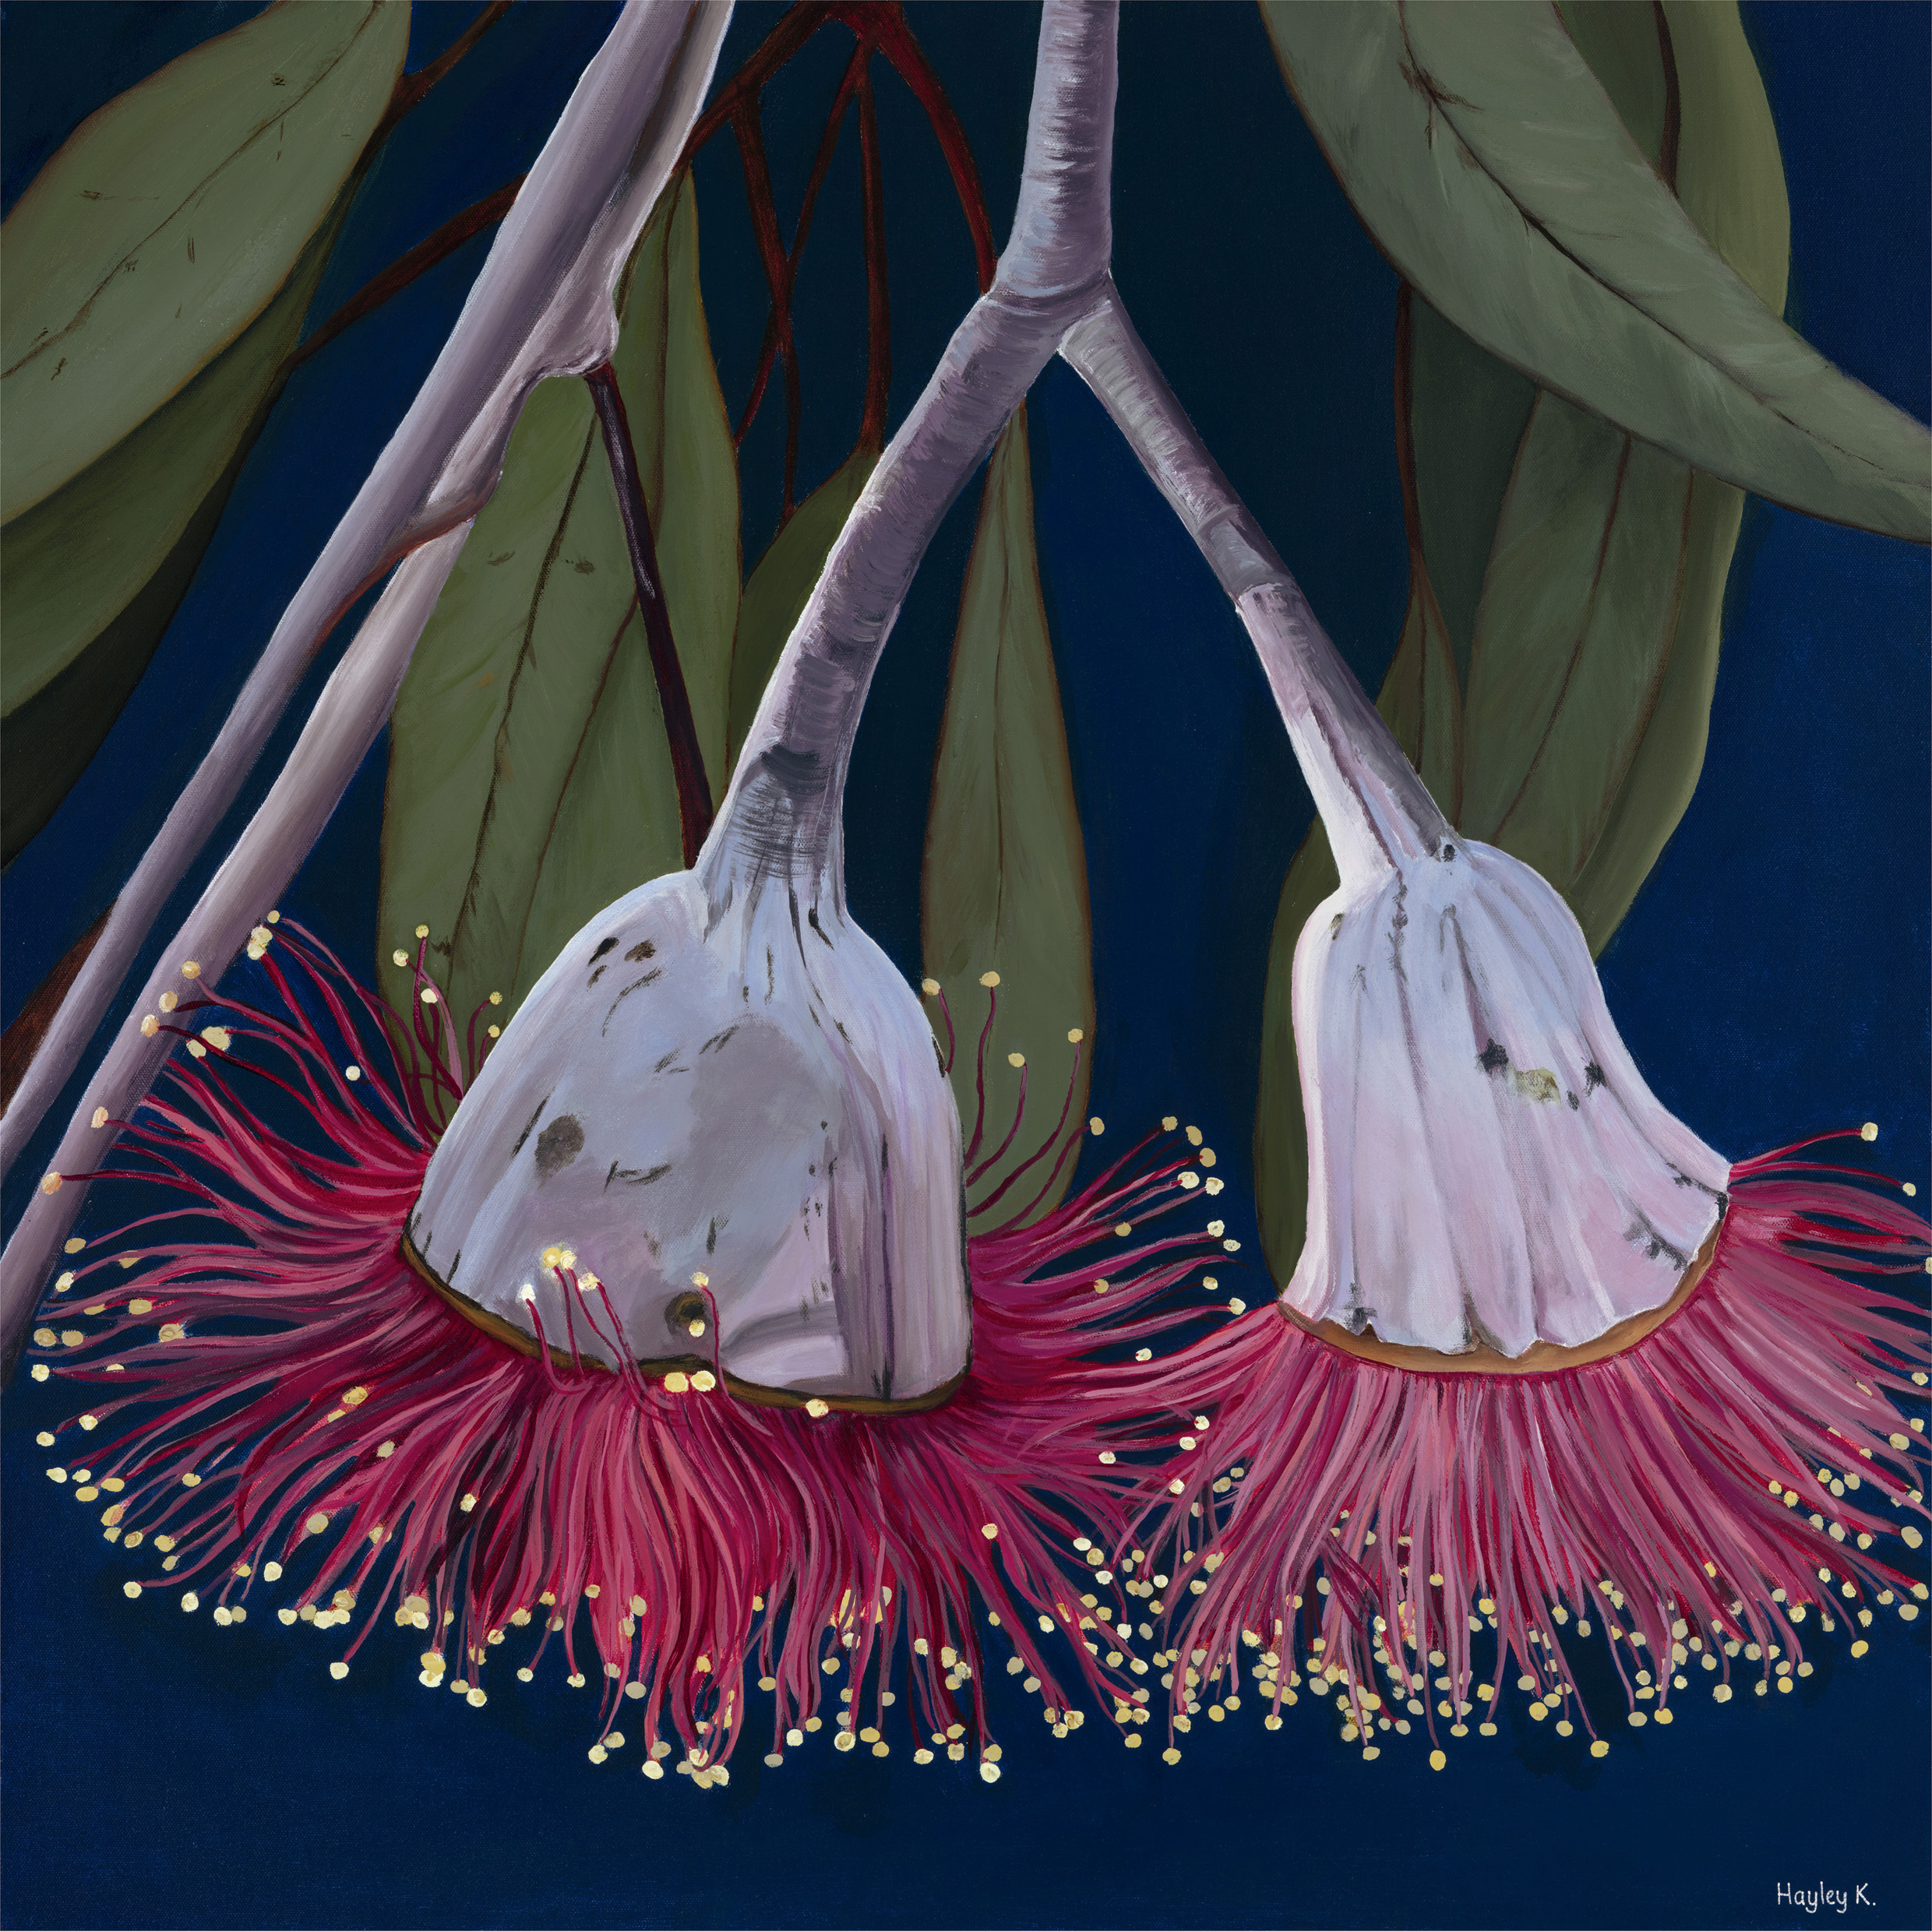 Crimson Beauty 76cm (W) x 76cm (H) $900  There are so many flowering Eucalyptus species when you start to take notice. They are all so beautiful, like little explosions of colour nestled in the green grey foliage of the incredible trees they grow on.